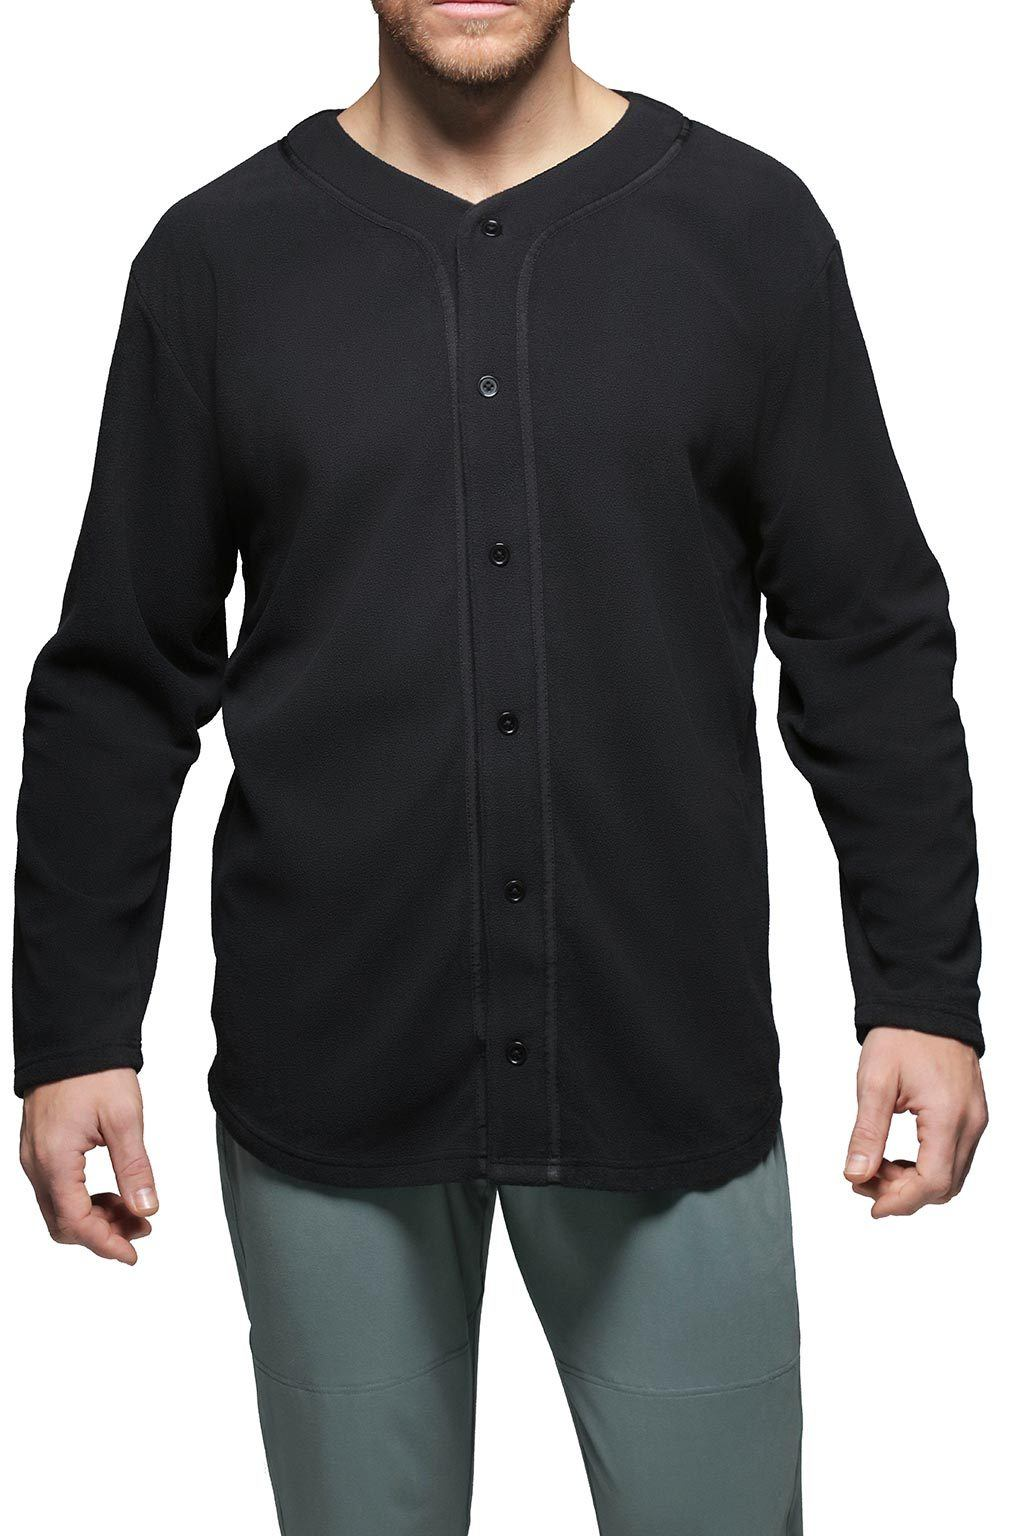 Men's Button Front Shirt Loungewear - Black